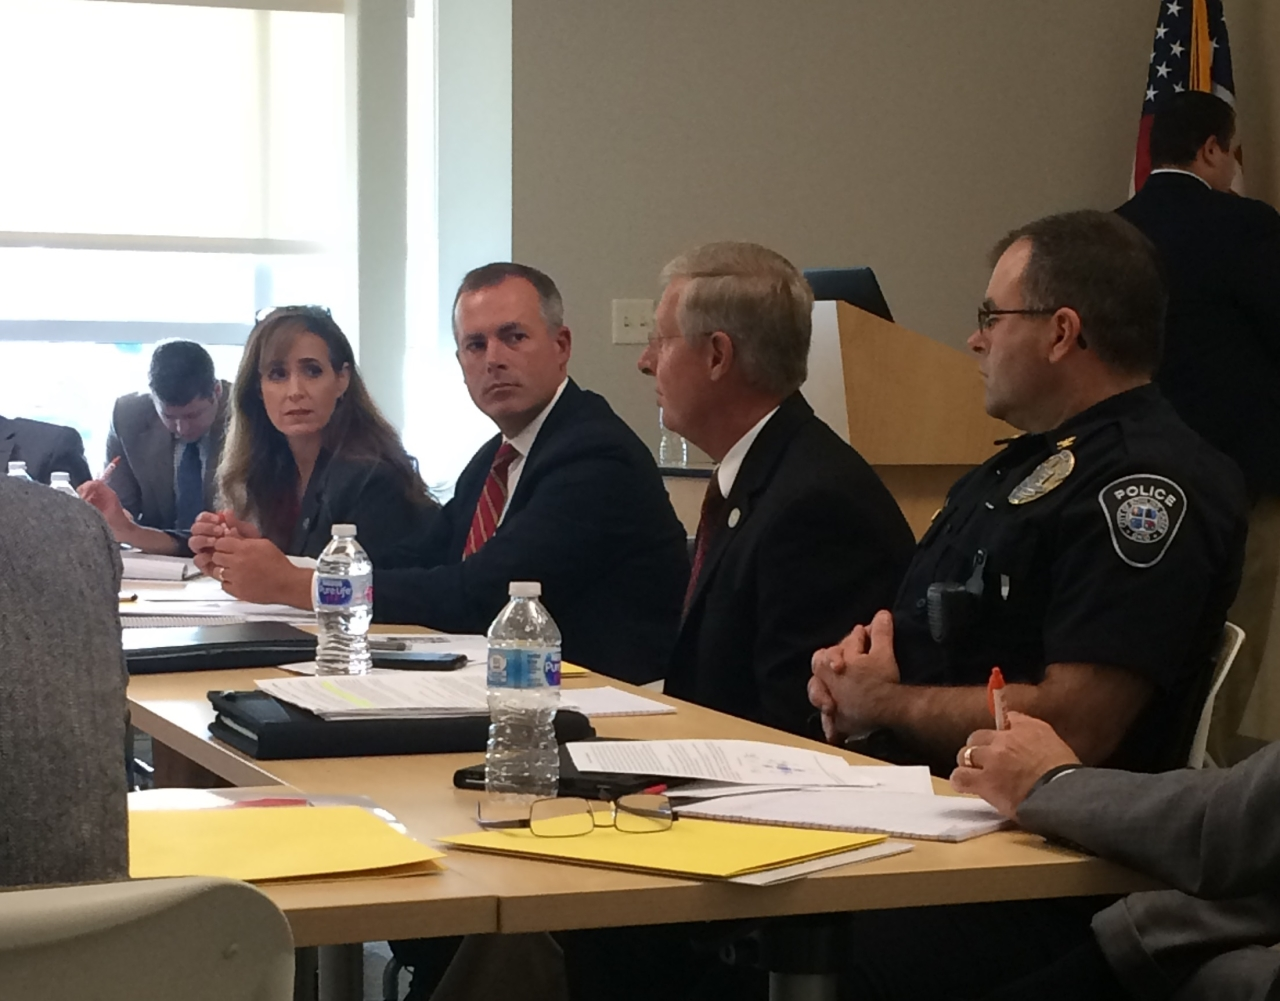 Rep. Sprague Holds First H.O.P.E.S. Task Force Roundtable